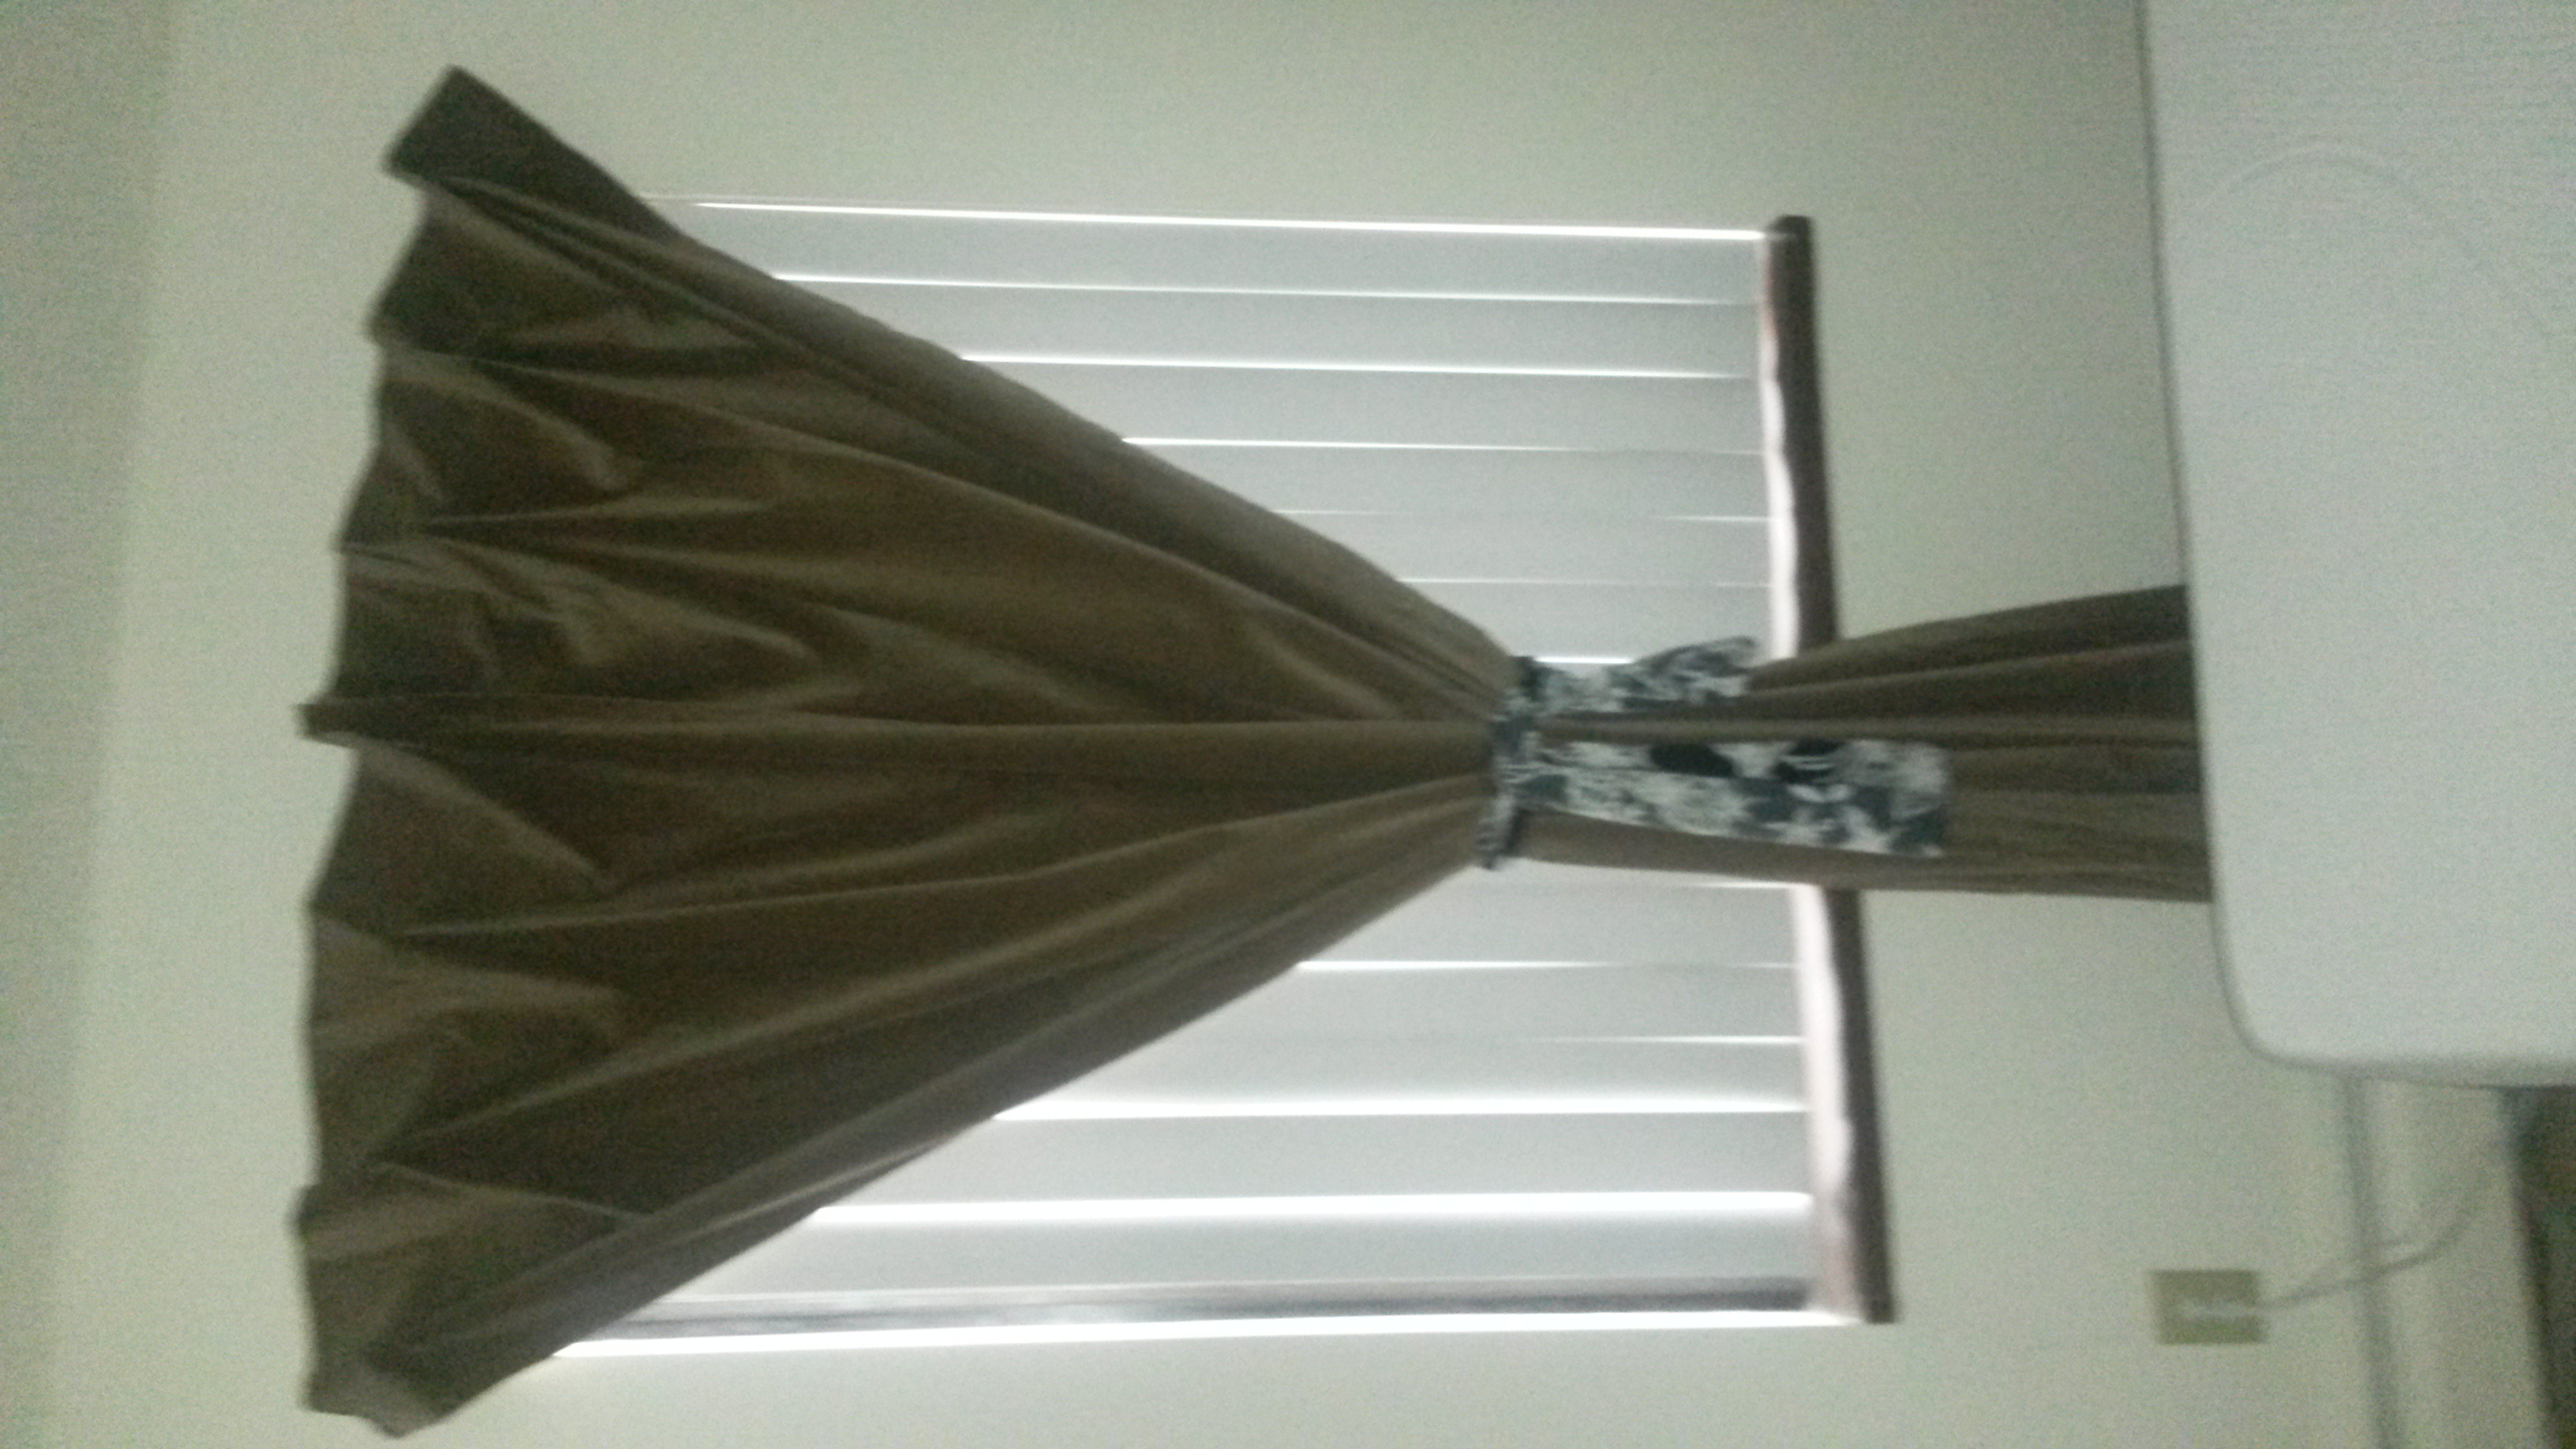 Hanging a curtain without a curtain rod skywaymom